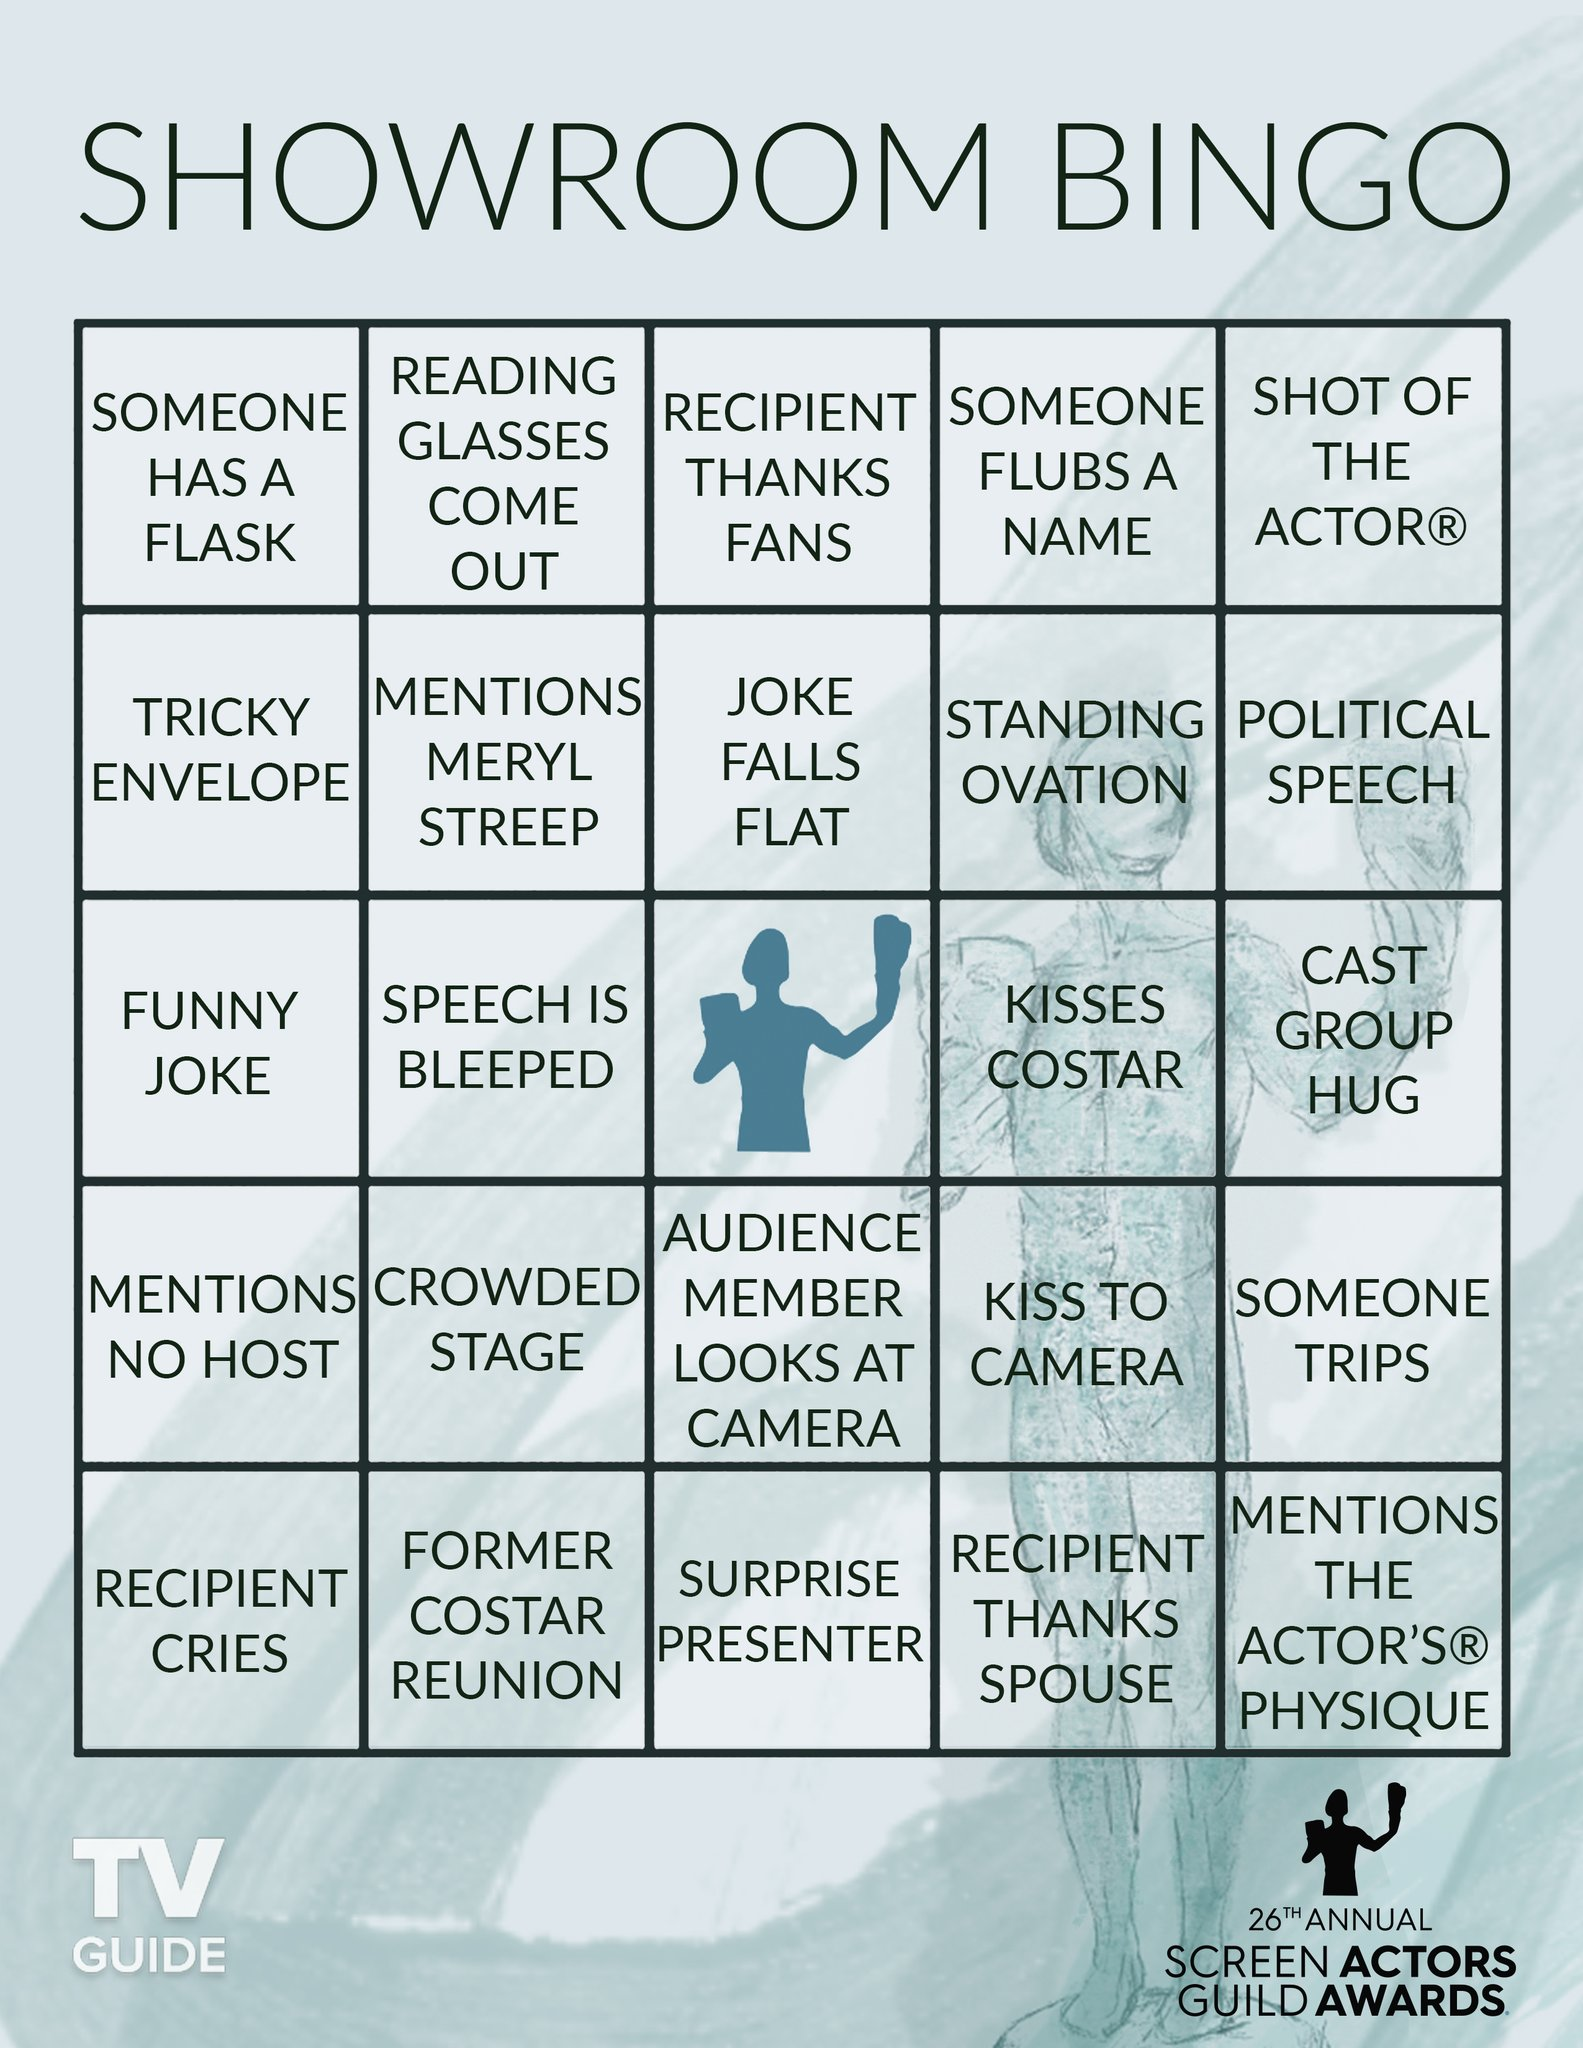 @SAGawards More Bingo cards for your @SAGawards  viewing party 🎈 https://t.co/zCxi1UCfer